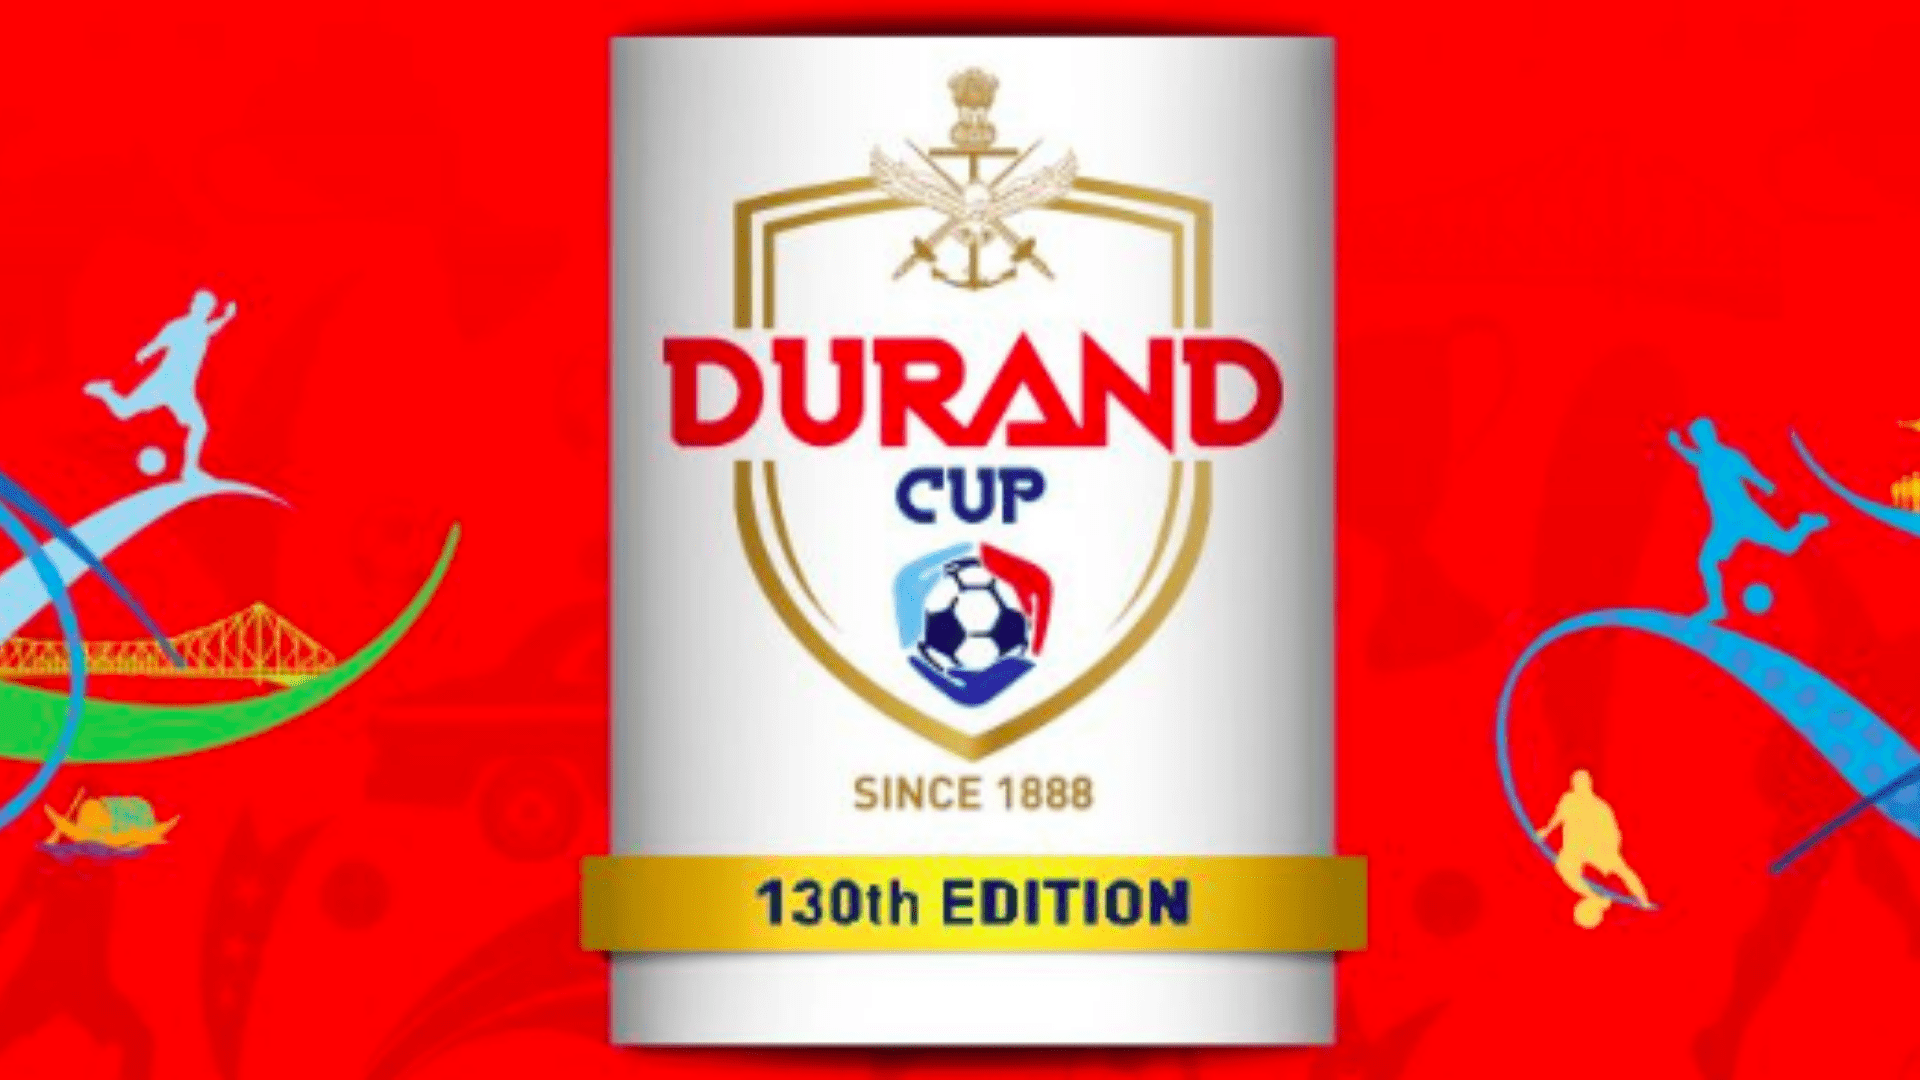 Durand Cup to held in Kolkata for next five years